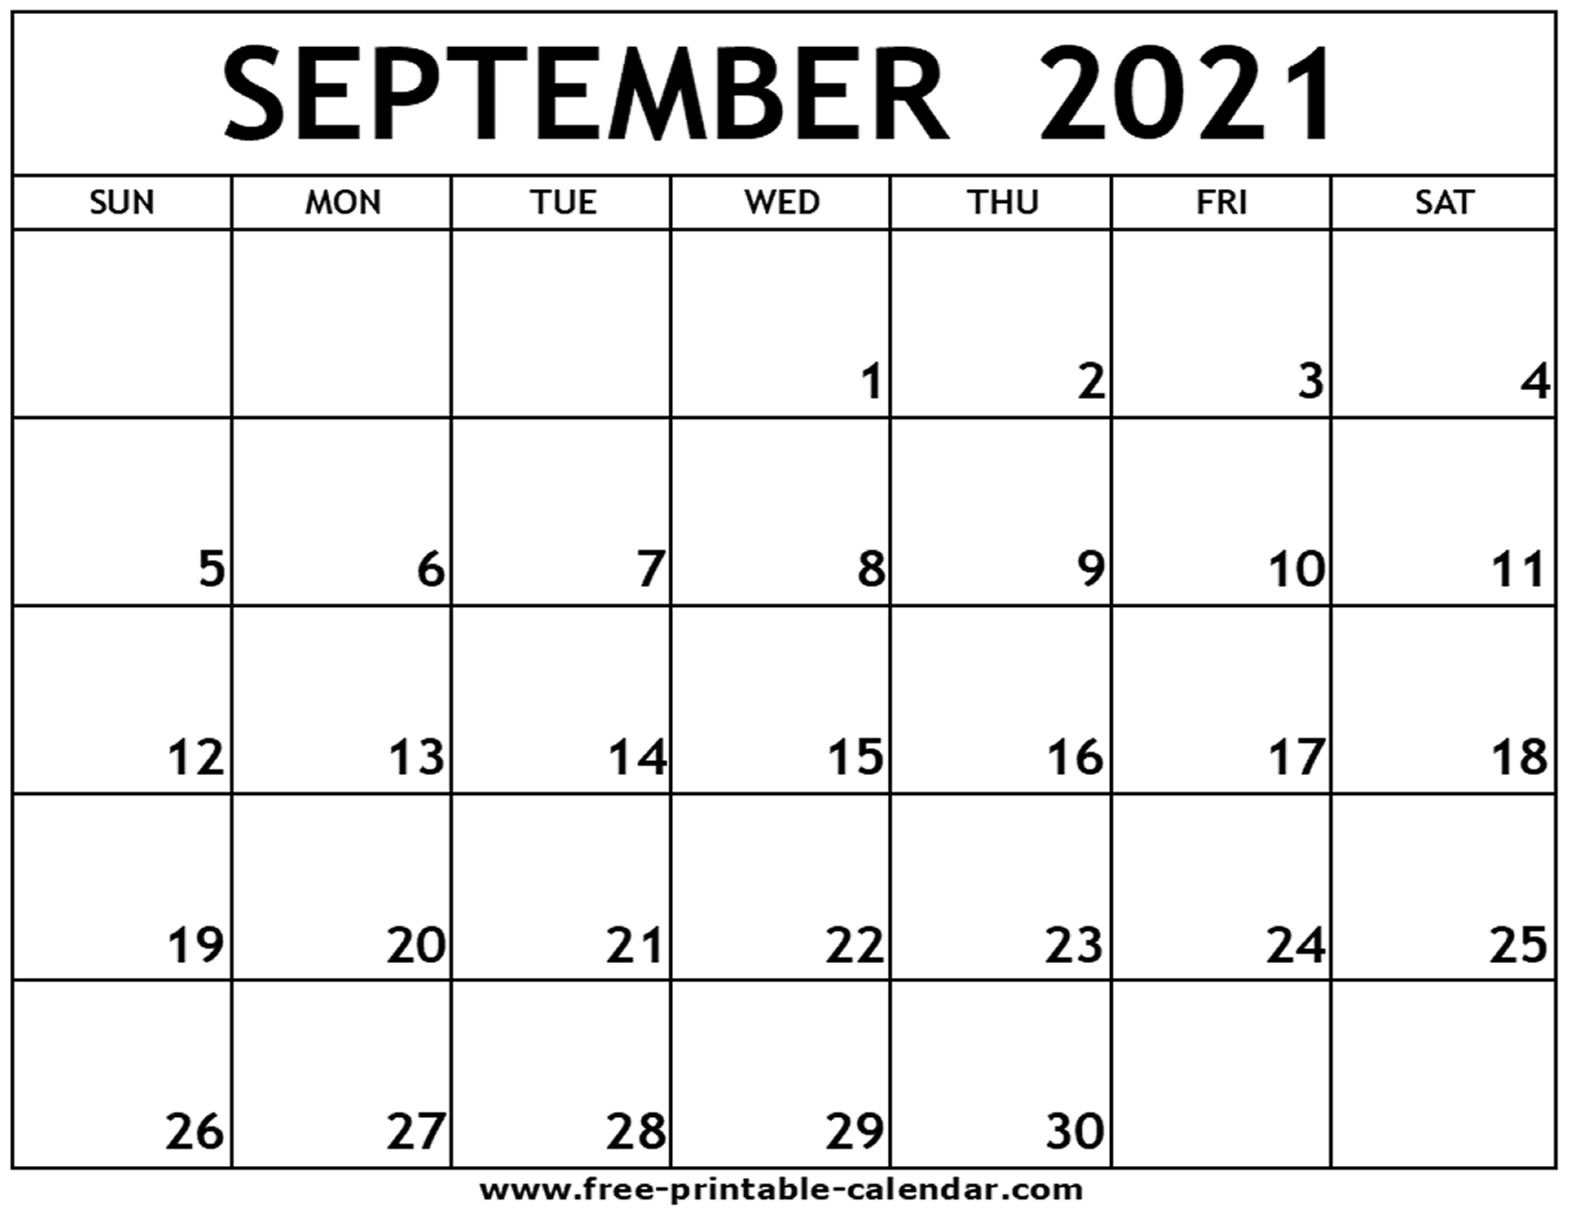 Collect Free Printable Monthly Calendar September 2021